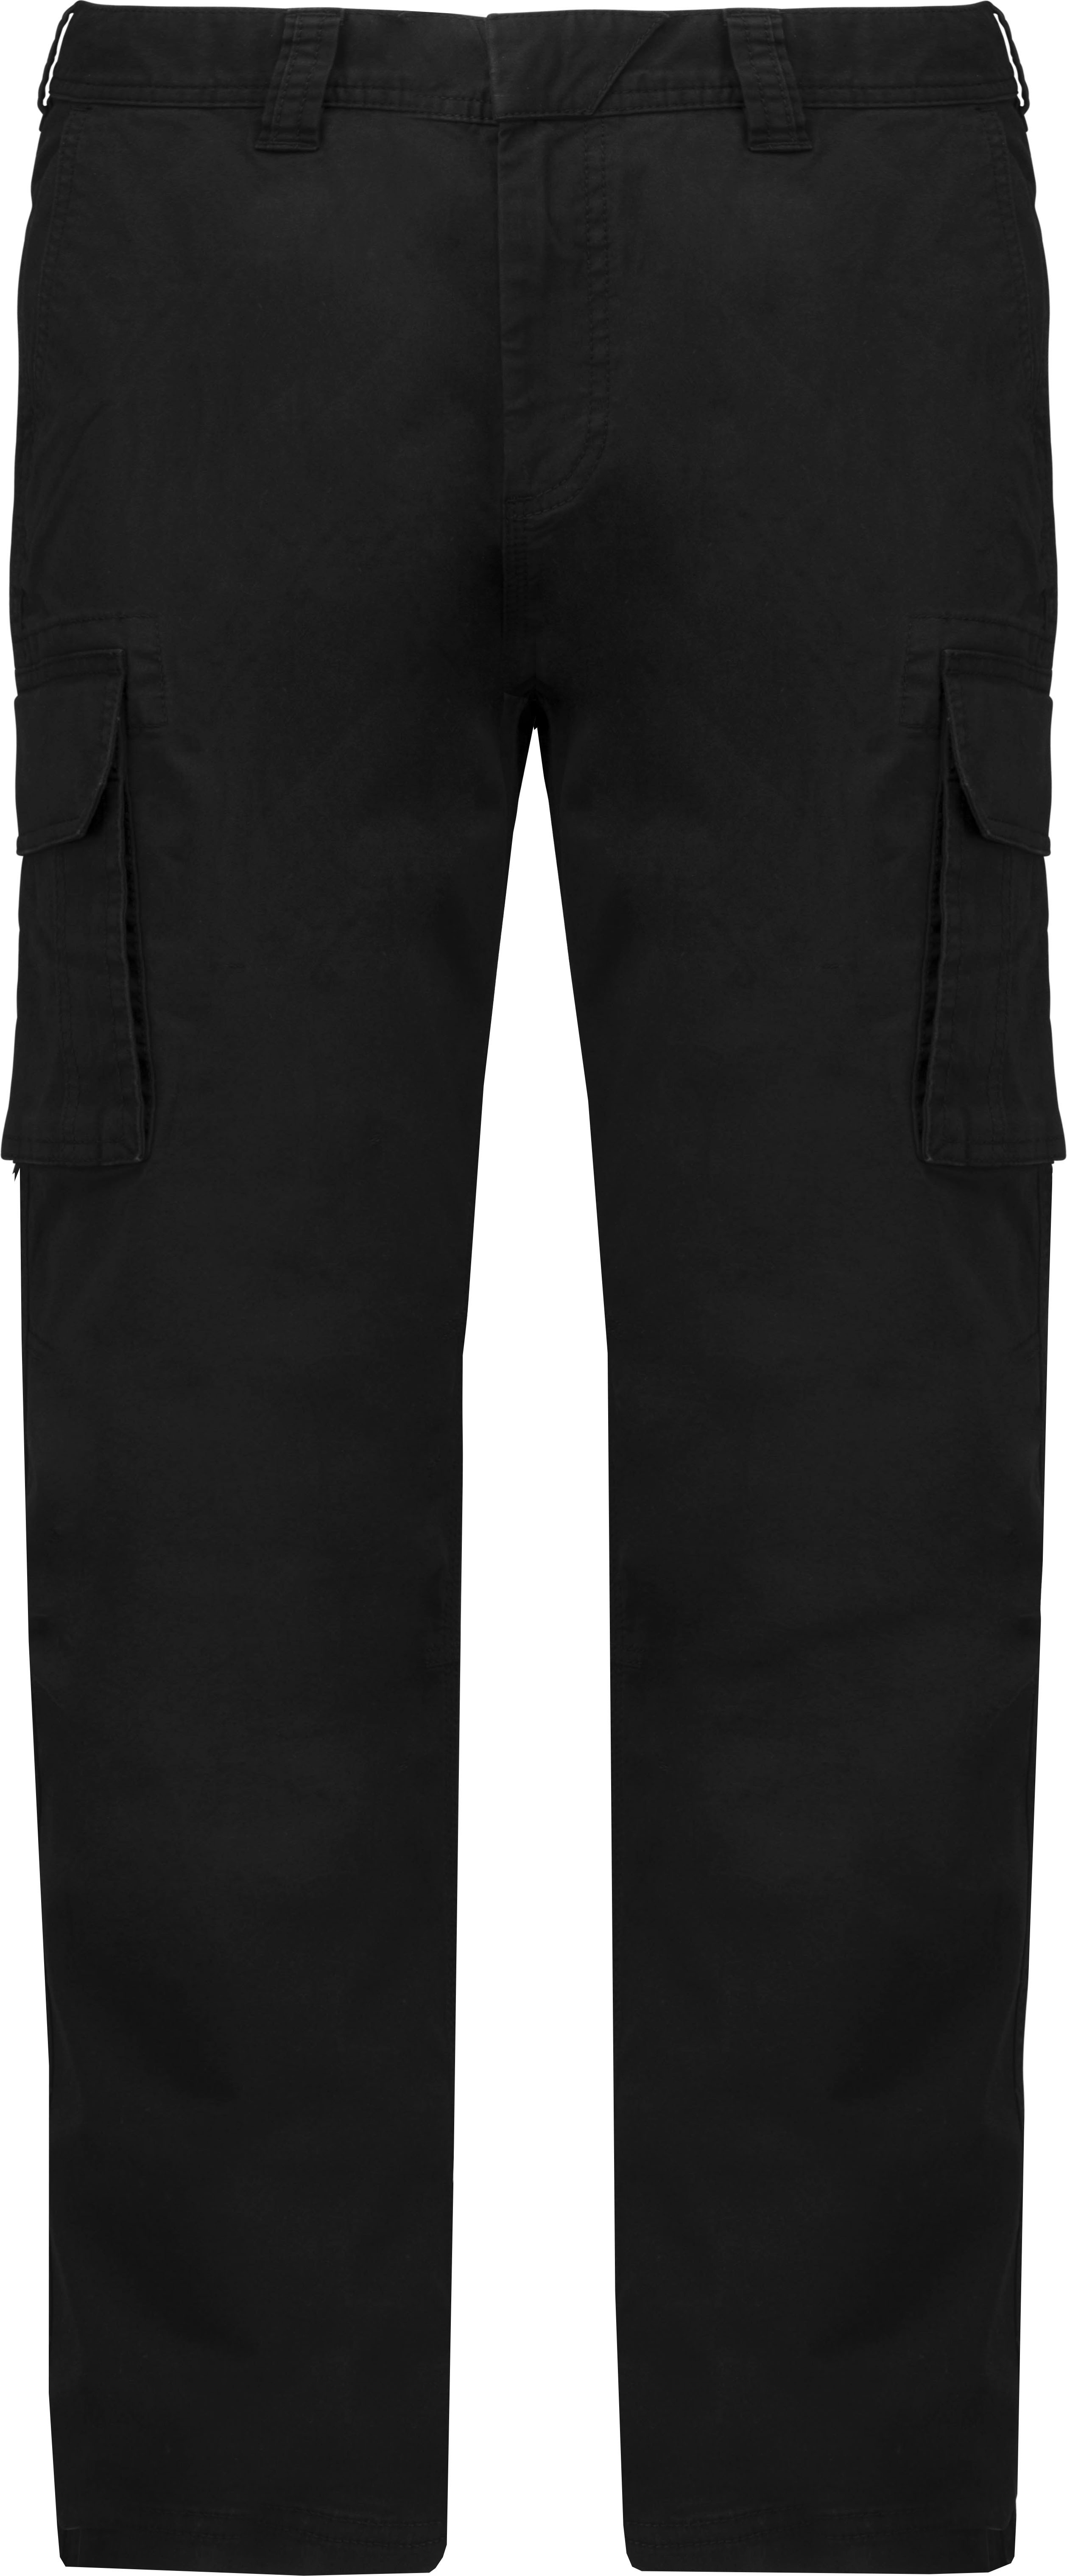 Pantalon multipoches homme - 2-1573-5